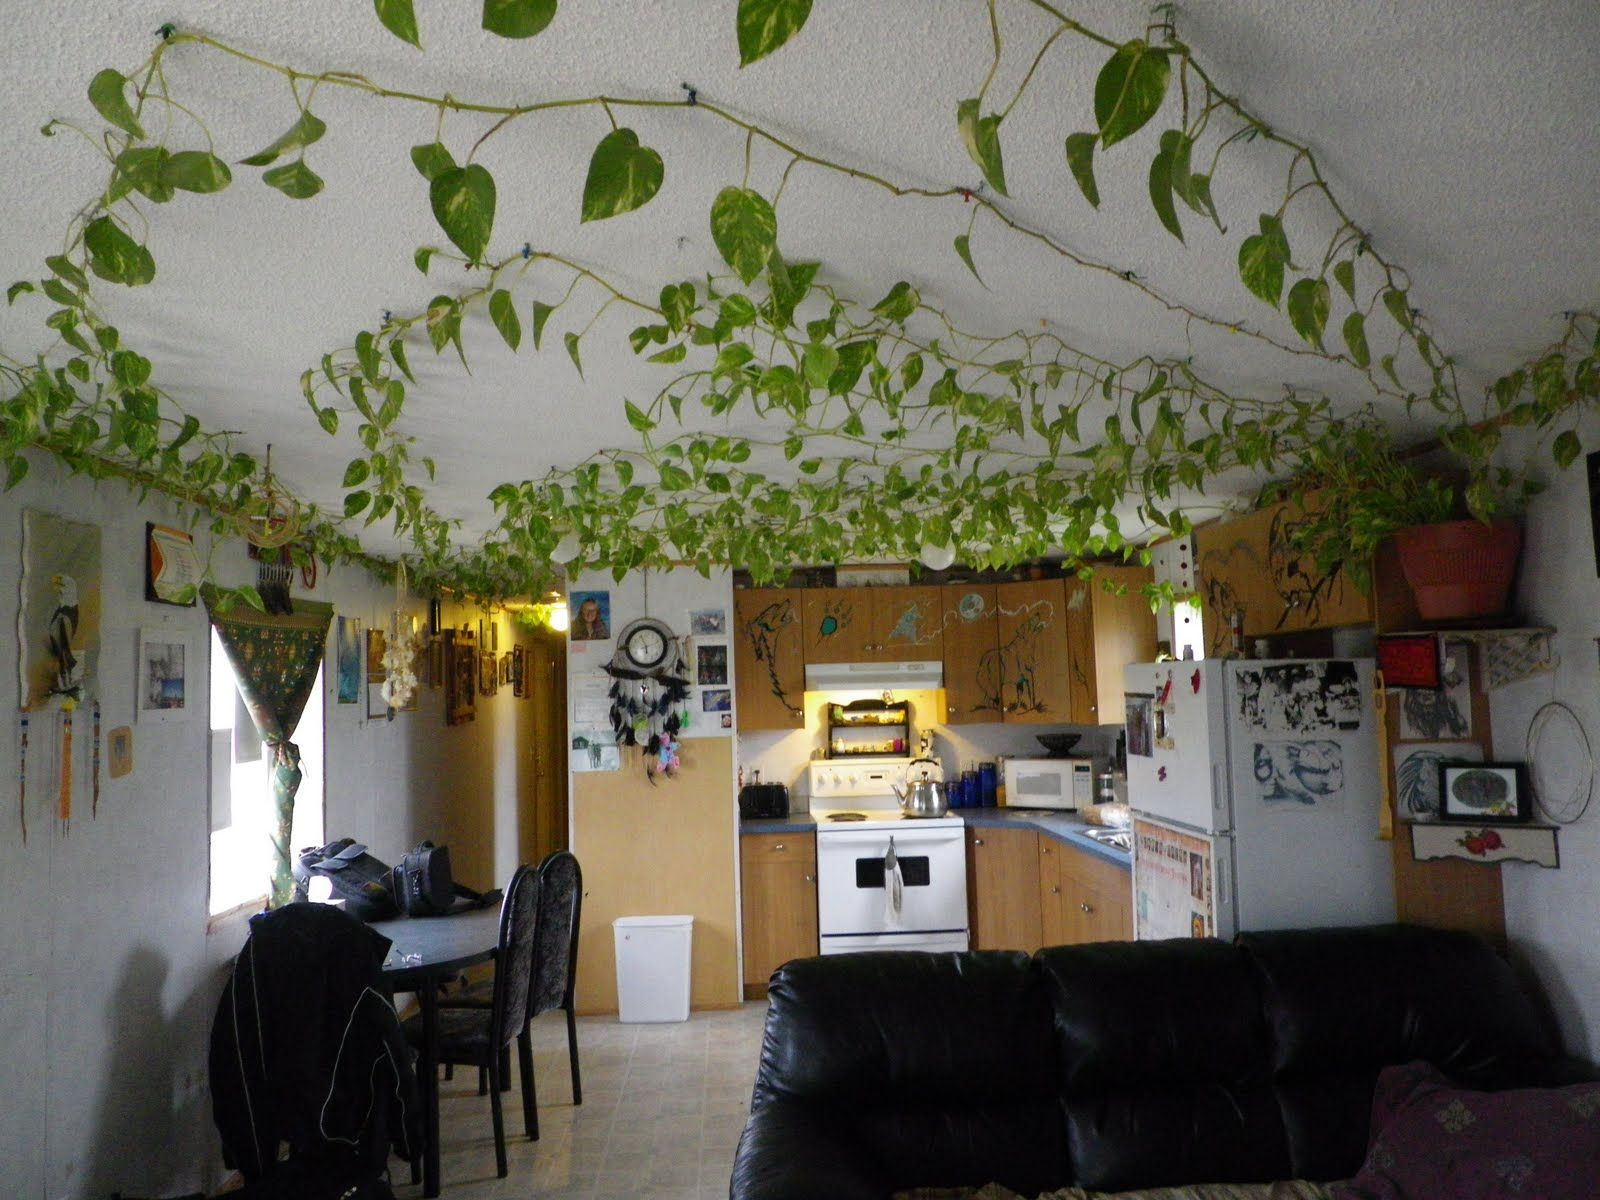 vining house plant that is trained to cover the ceiling